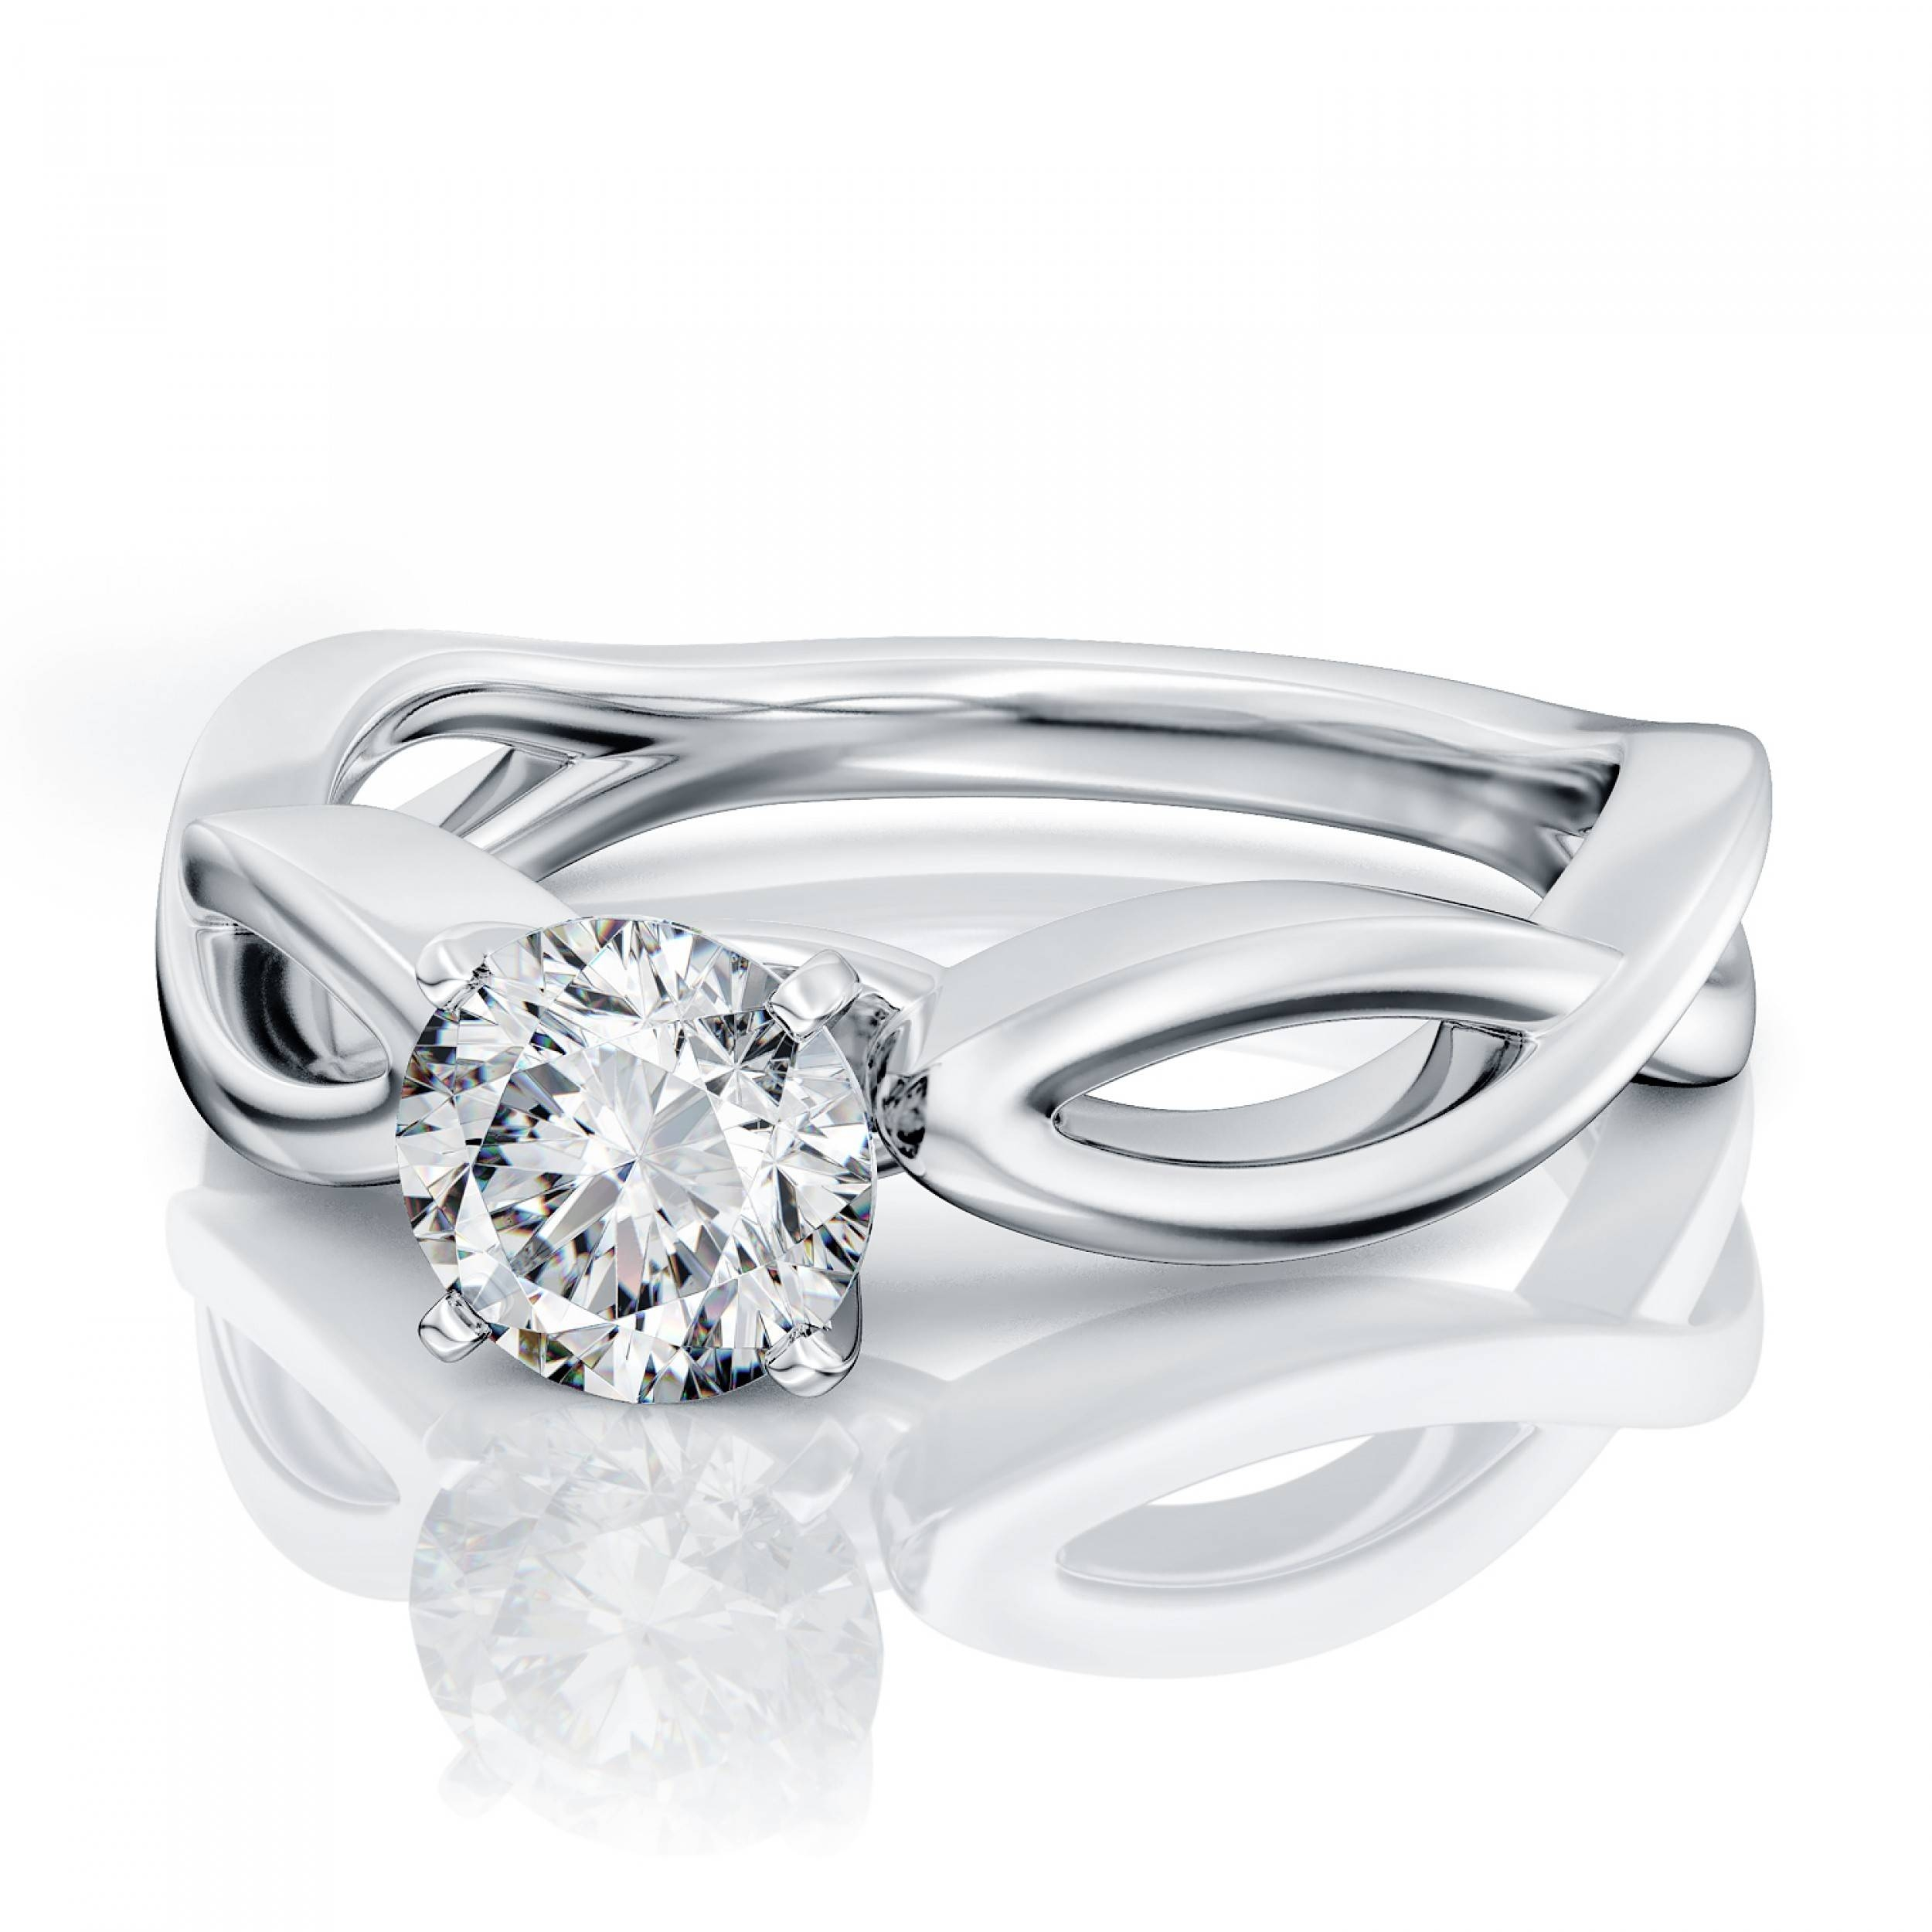 40 Carat Intricate Diamond Engagement Ring In 18K White Gold Gia Intended For Intricate Engagement Rings (View 3 of 15)